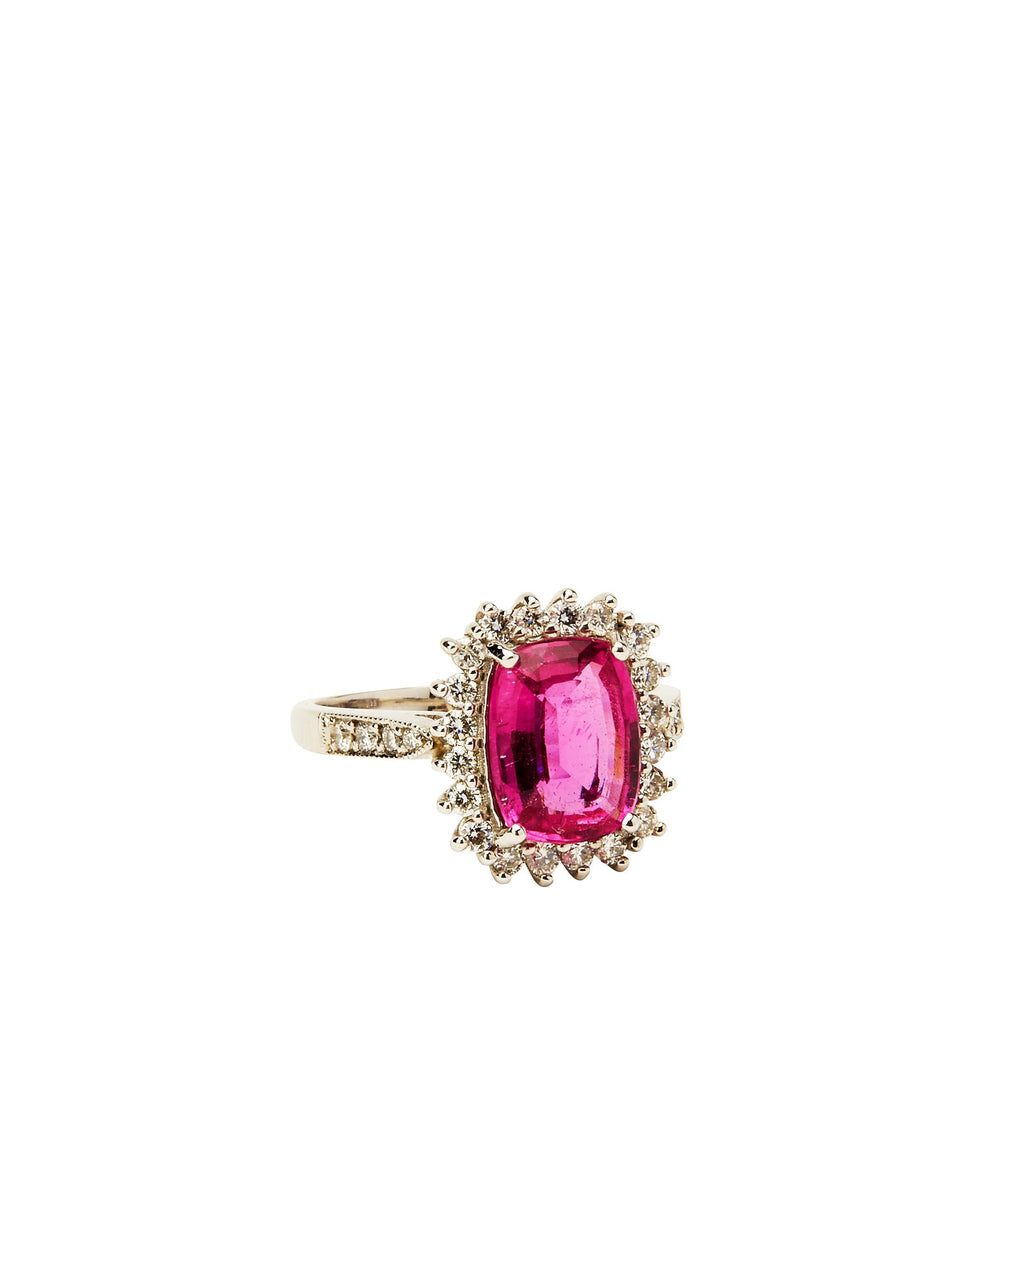 Pink Tourmaline & Diamond on 14K Gold